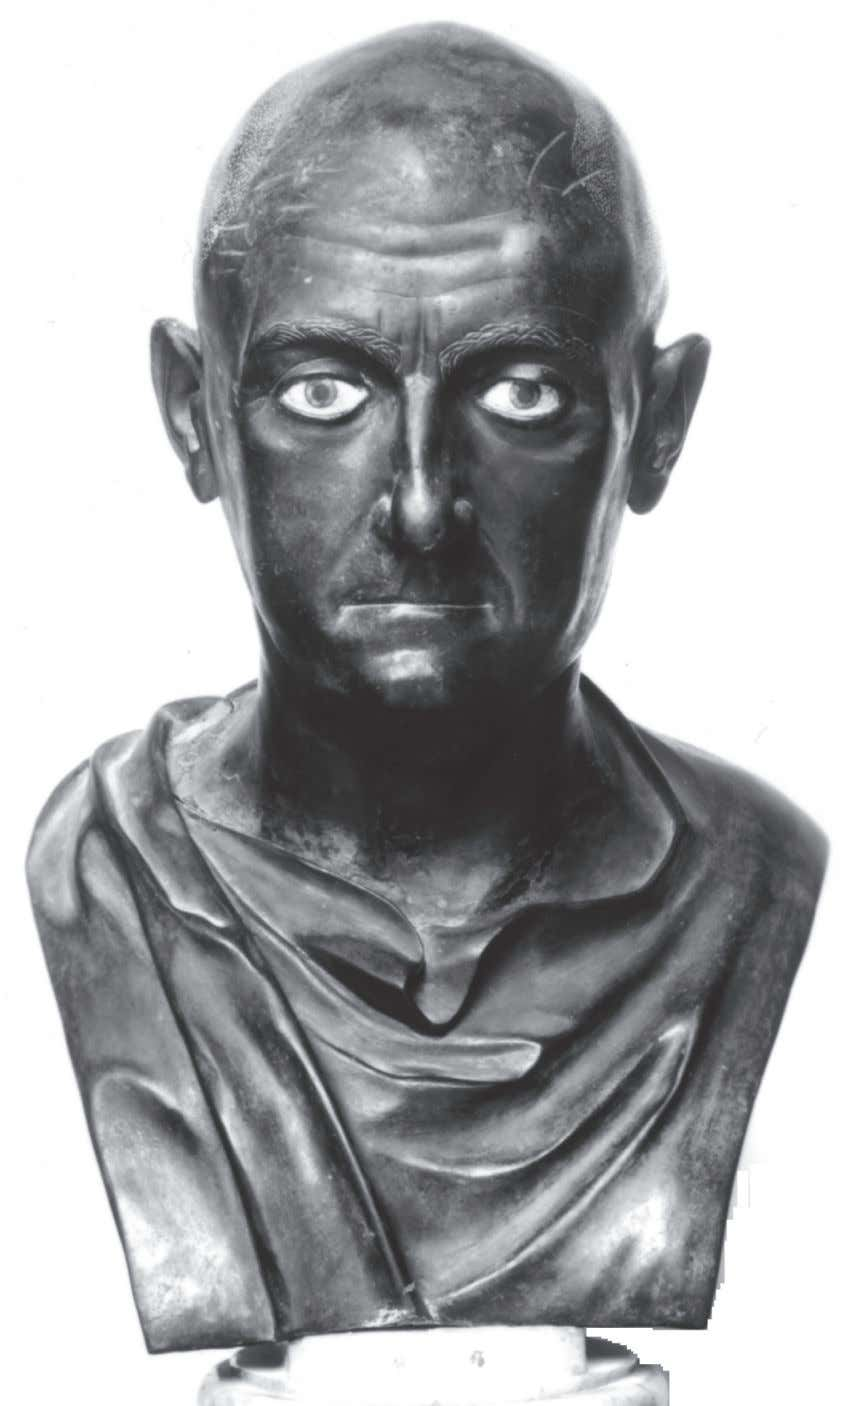 VÉRONIQUE DASEN Figure 2 : Bronze, d'Herculanum. Naples MAN 5634. Photo du musée. 236